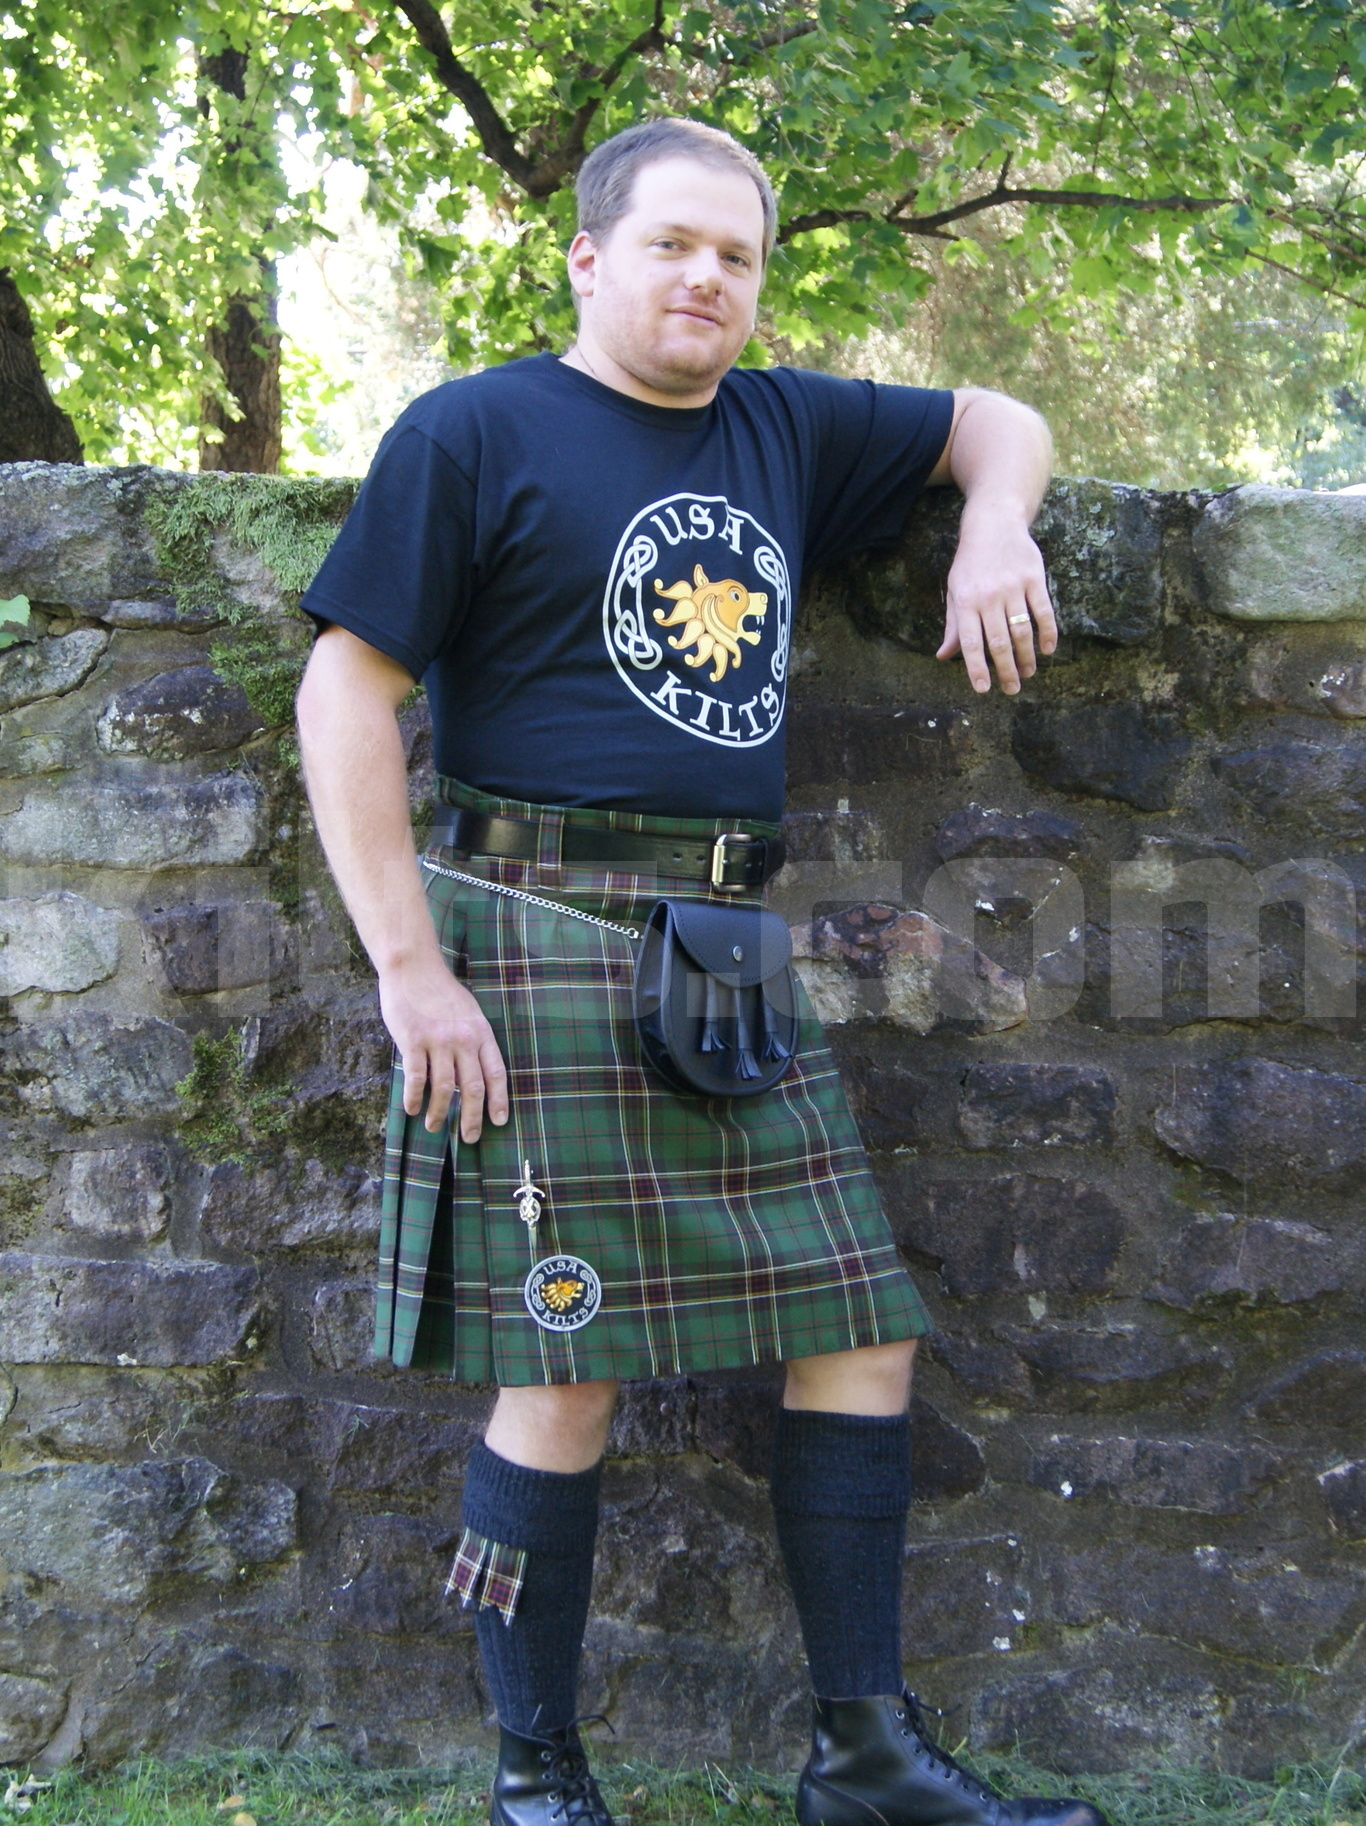 97760a1a608 Casual Kilt - Informal Kilts for Men - Thousands of Tartans - Kilts.com